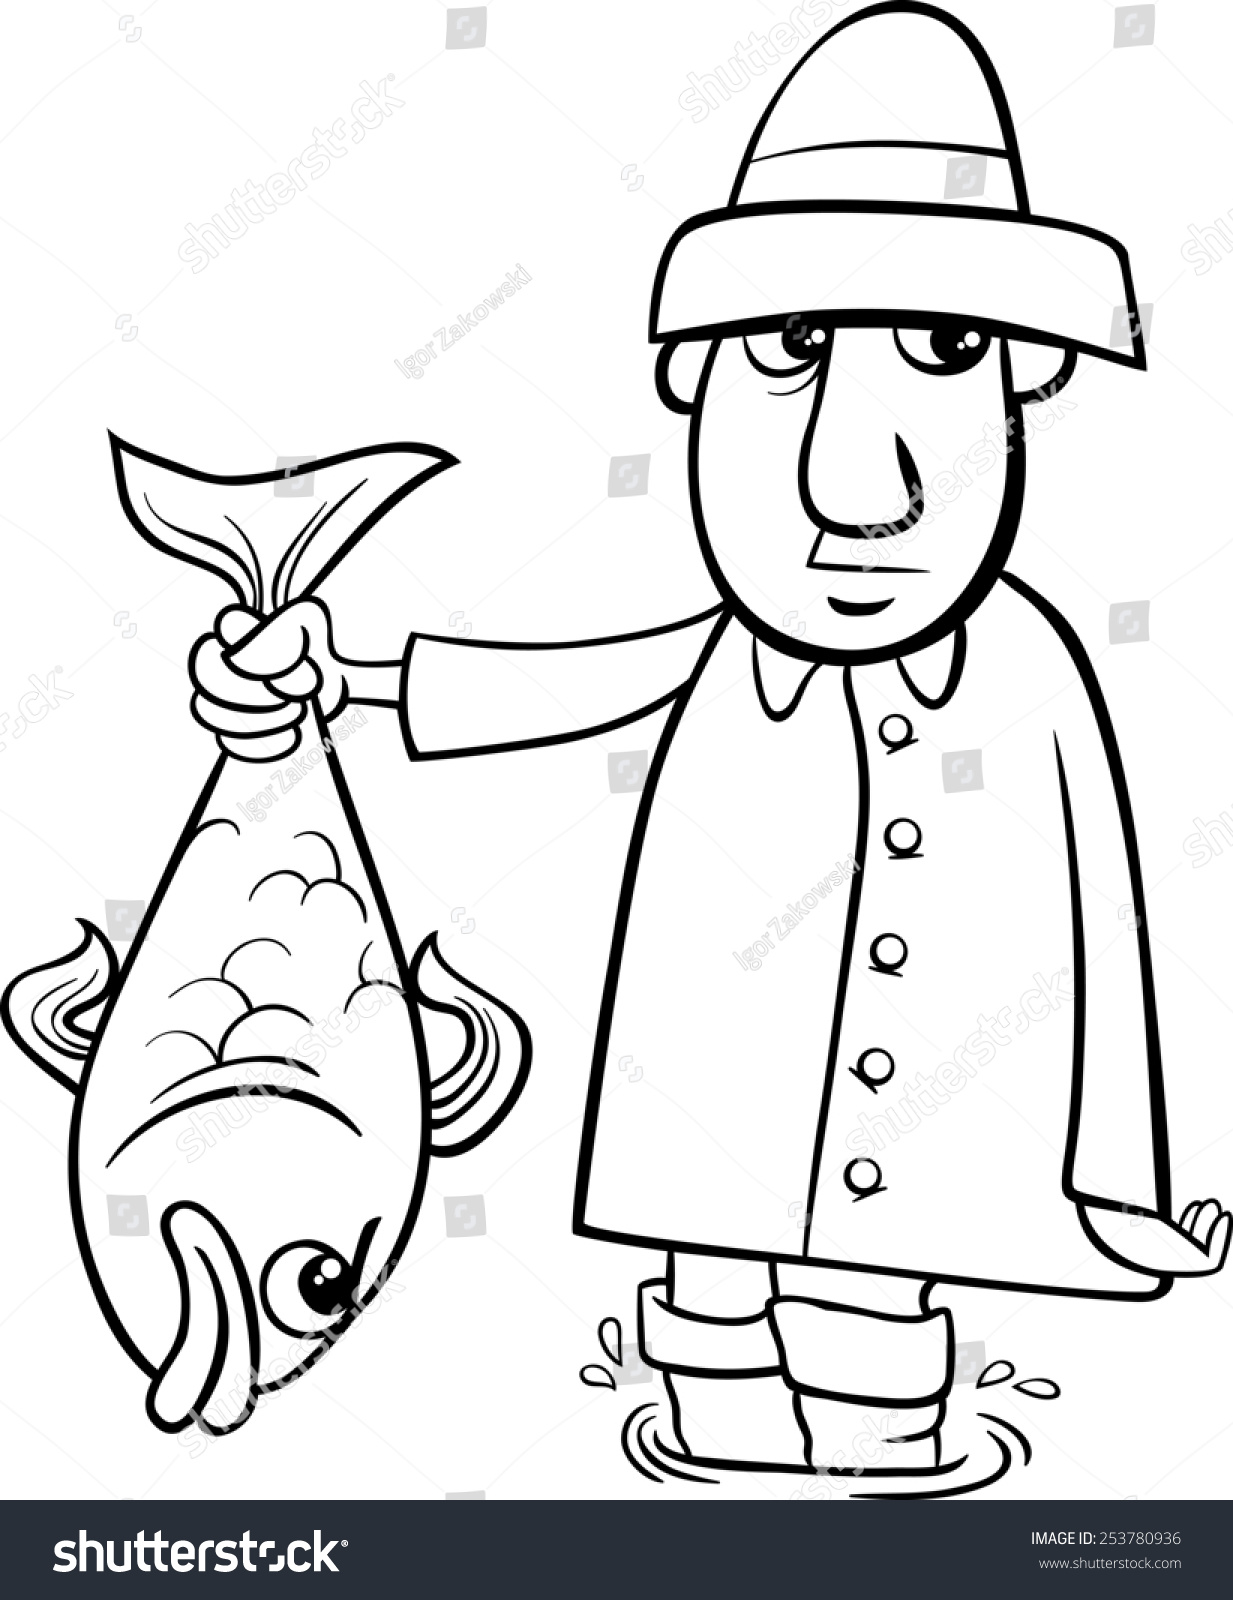 Black And White Cartoon Illustration Of Angler Or Fisherman With Big Fish For Coloring Book